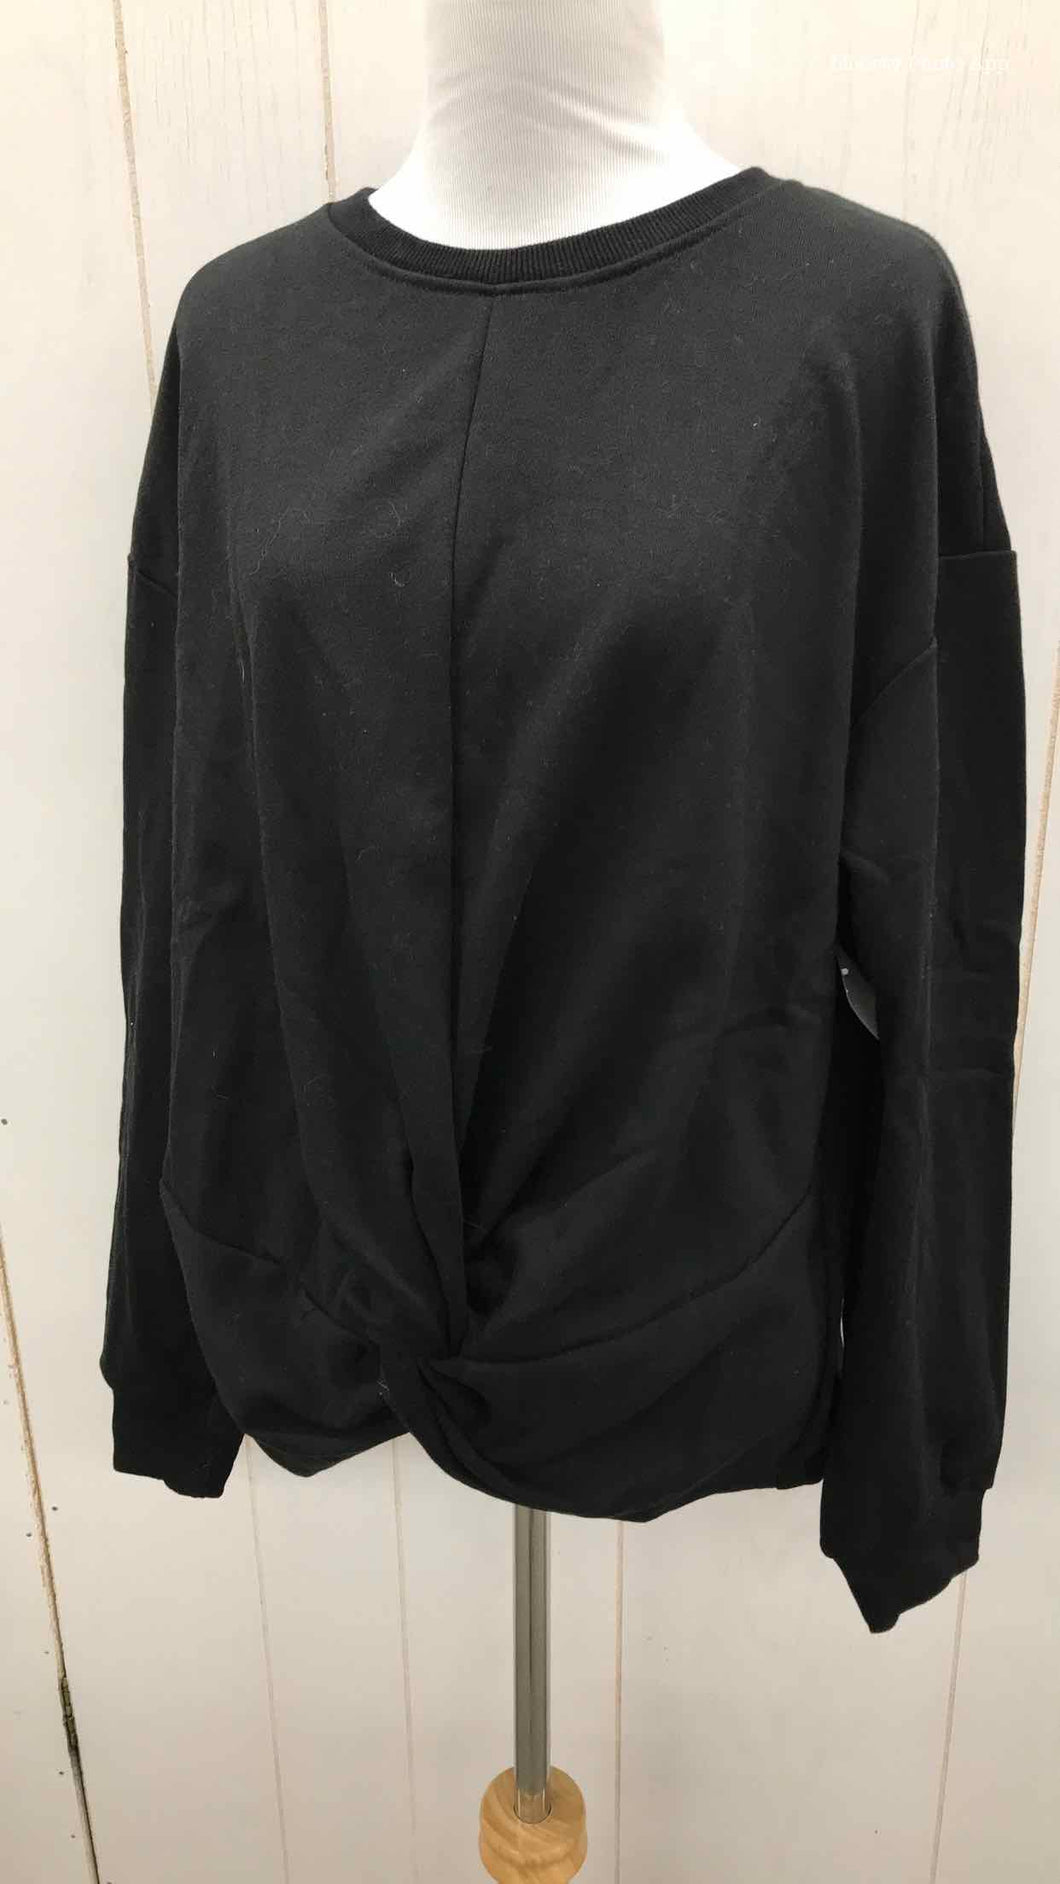 Lumiere Black Womens Size Small Sweatshirt